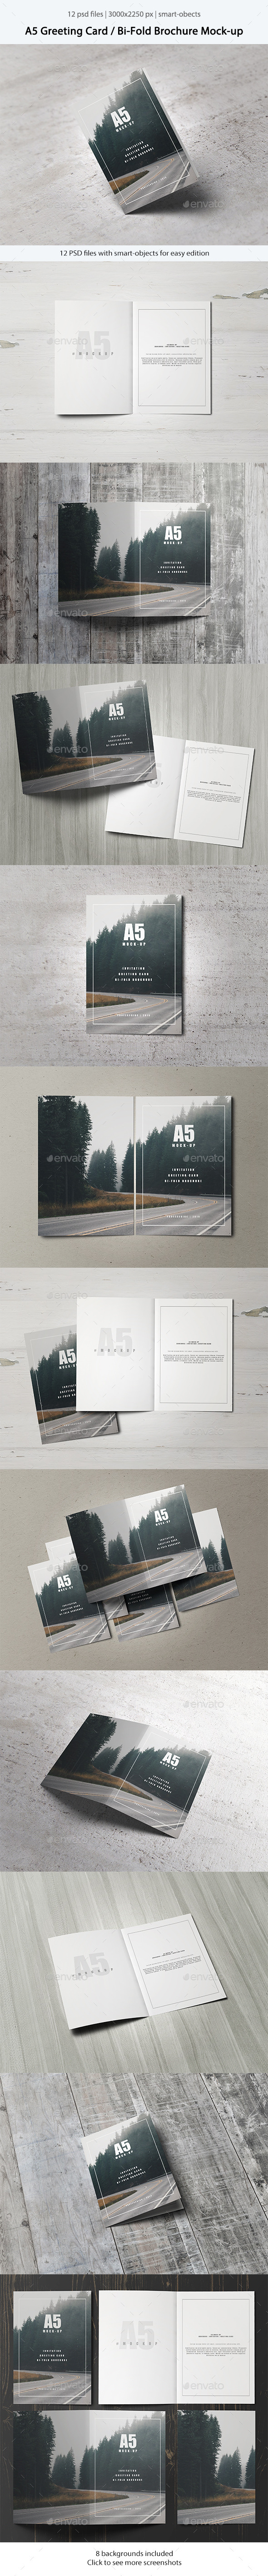 GraphicRiver A5 Greeting Card Bi-Fold Brochure Mock-Up 11412525